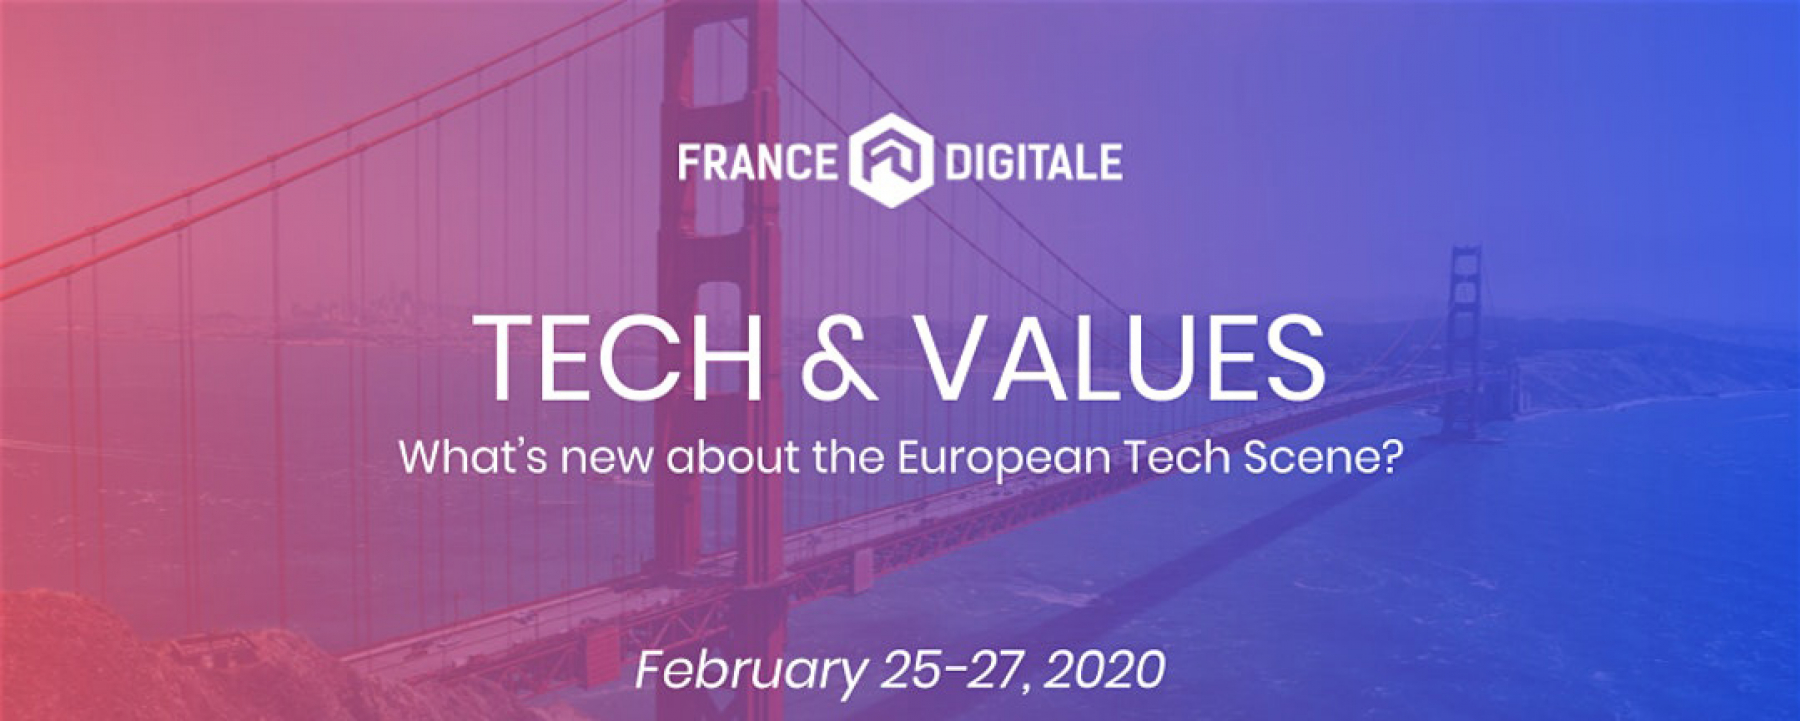 Tech& values evenement France Digitale 2020